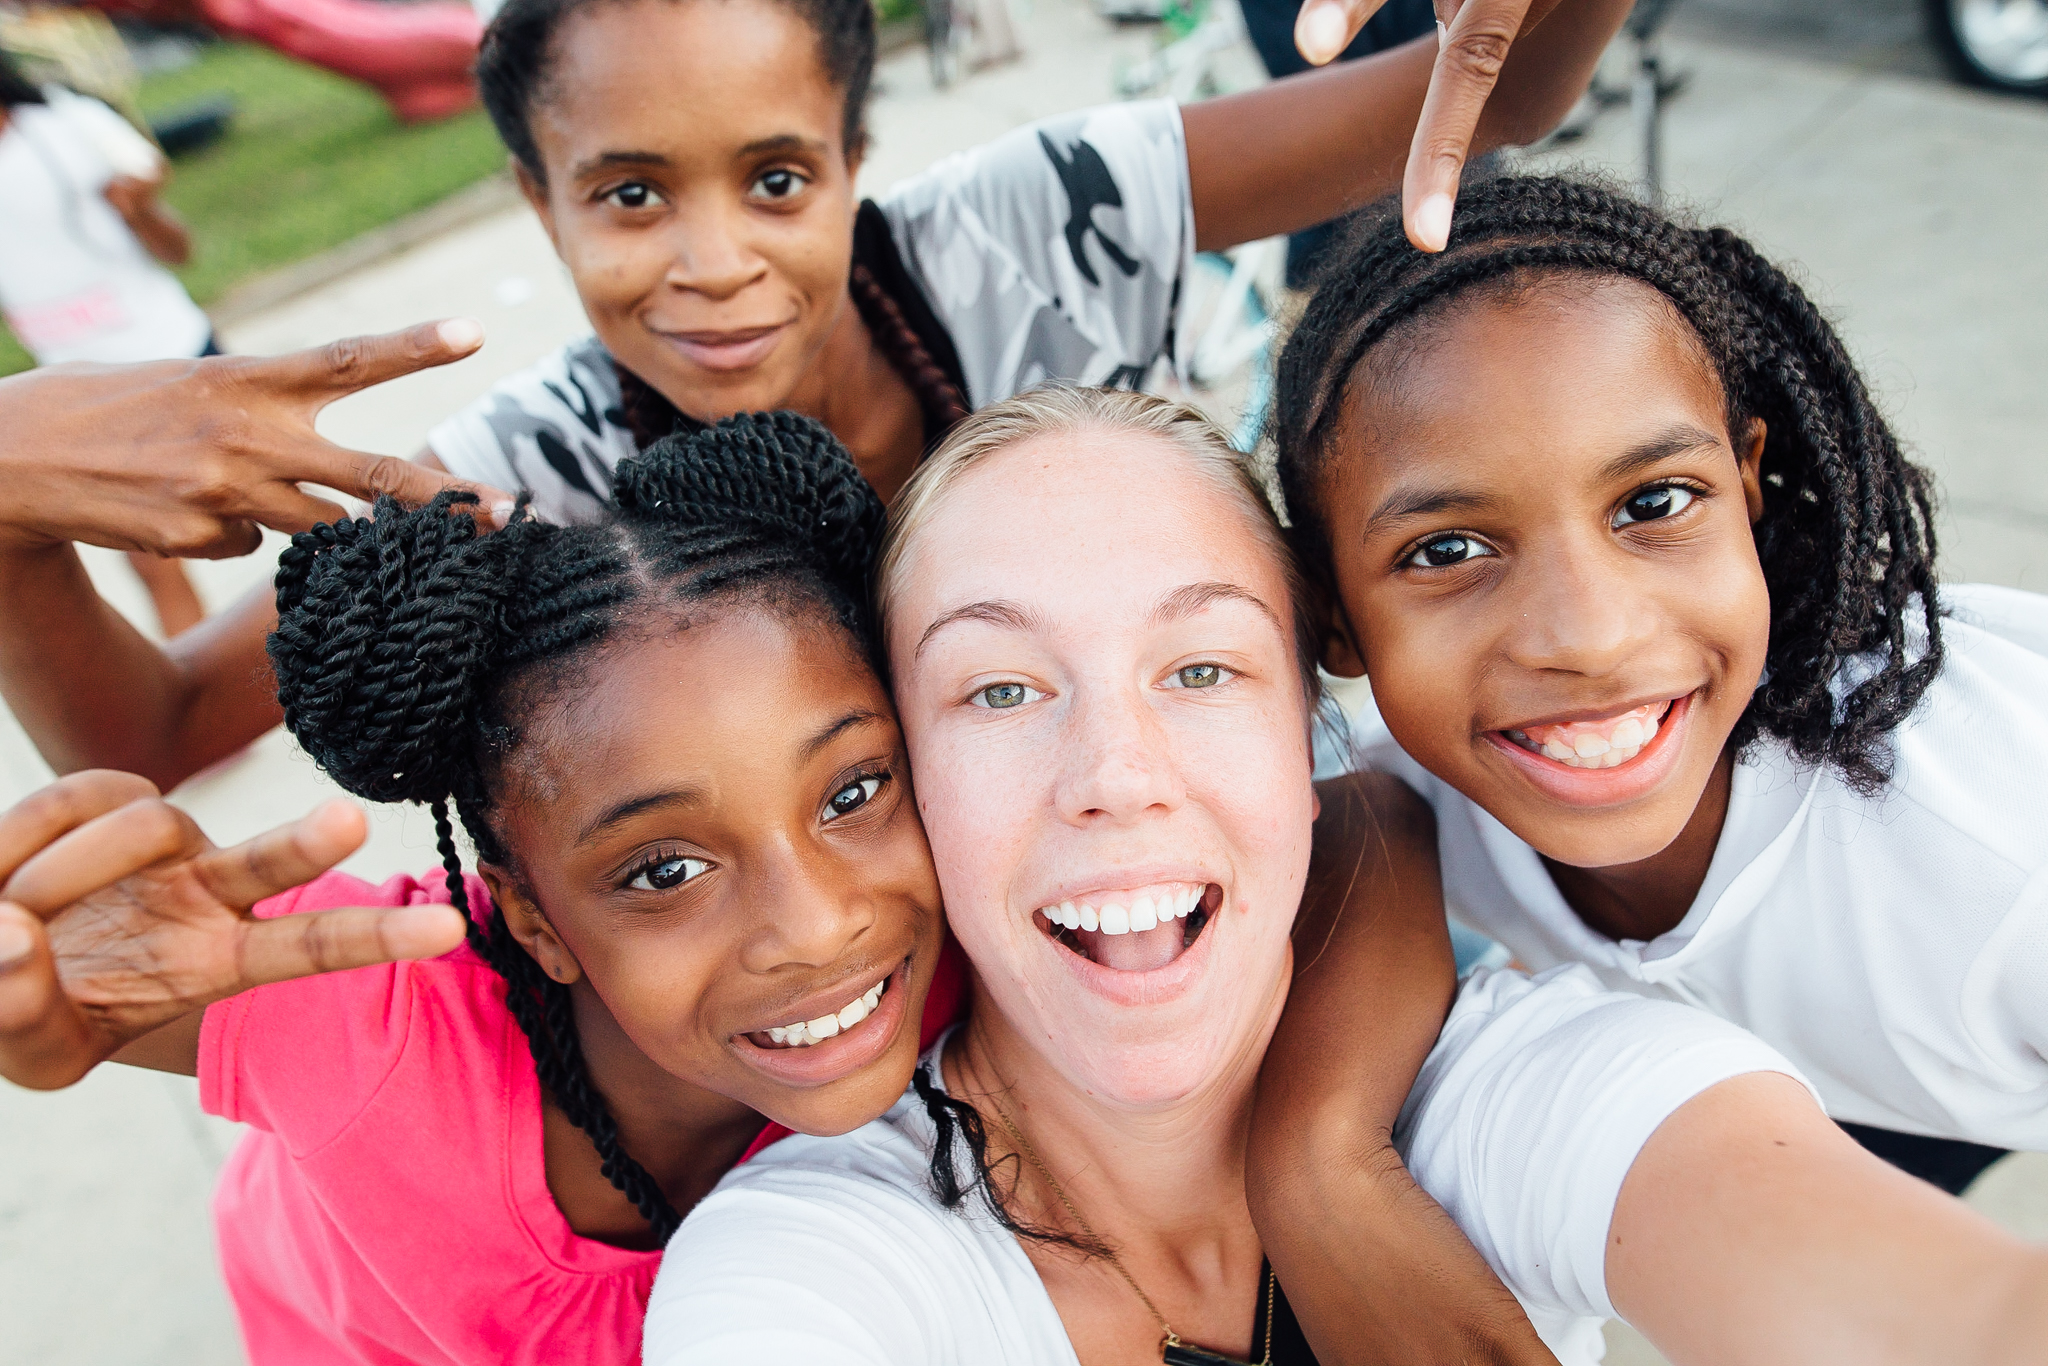 young adult girl smiling selfie with three younger african american girls hands peace signs.jpg